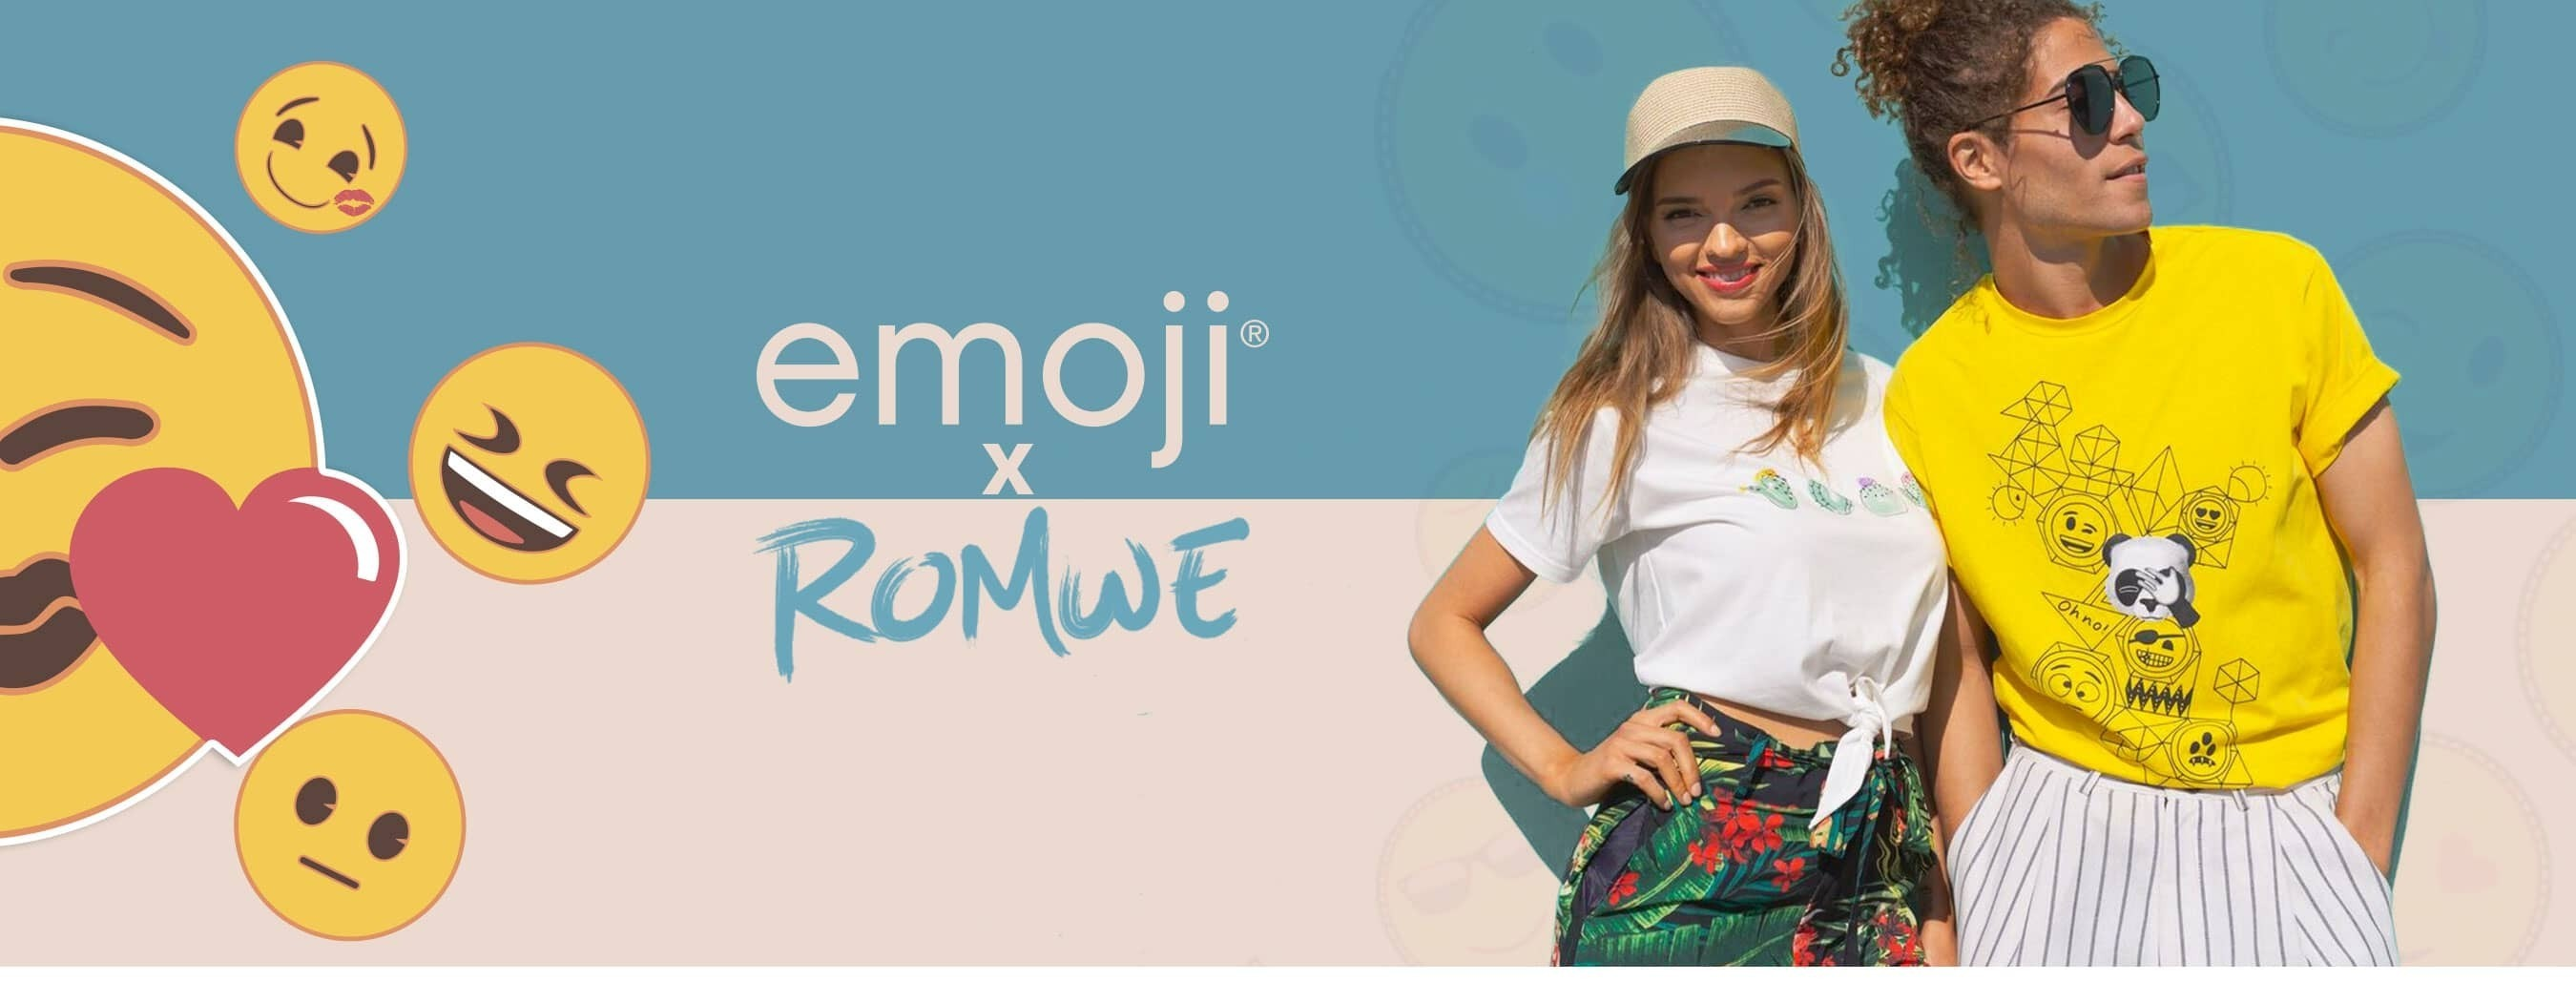 4cb726a5cf3c8 Shop The Latest Girls   Guys Fashion Trends at ROMWE